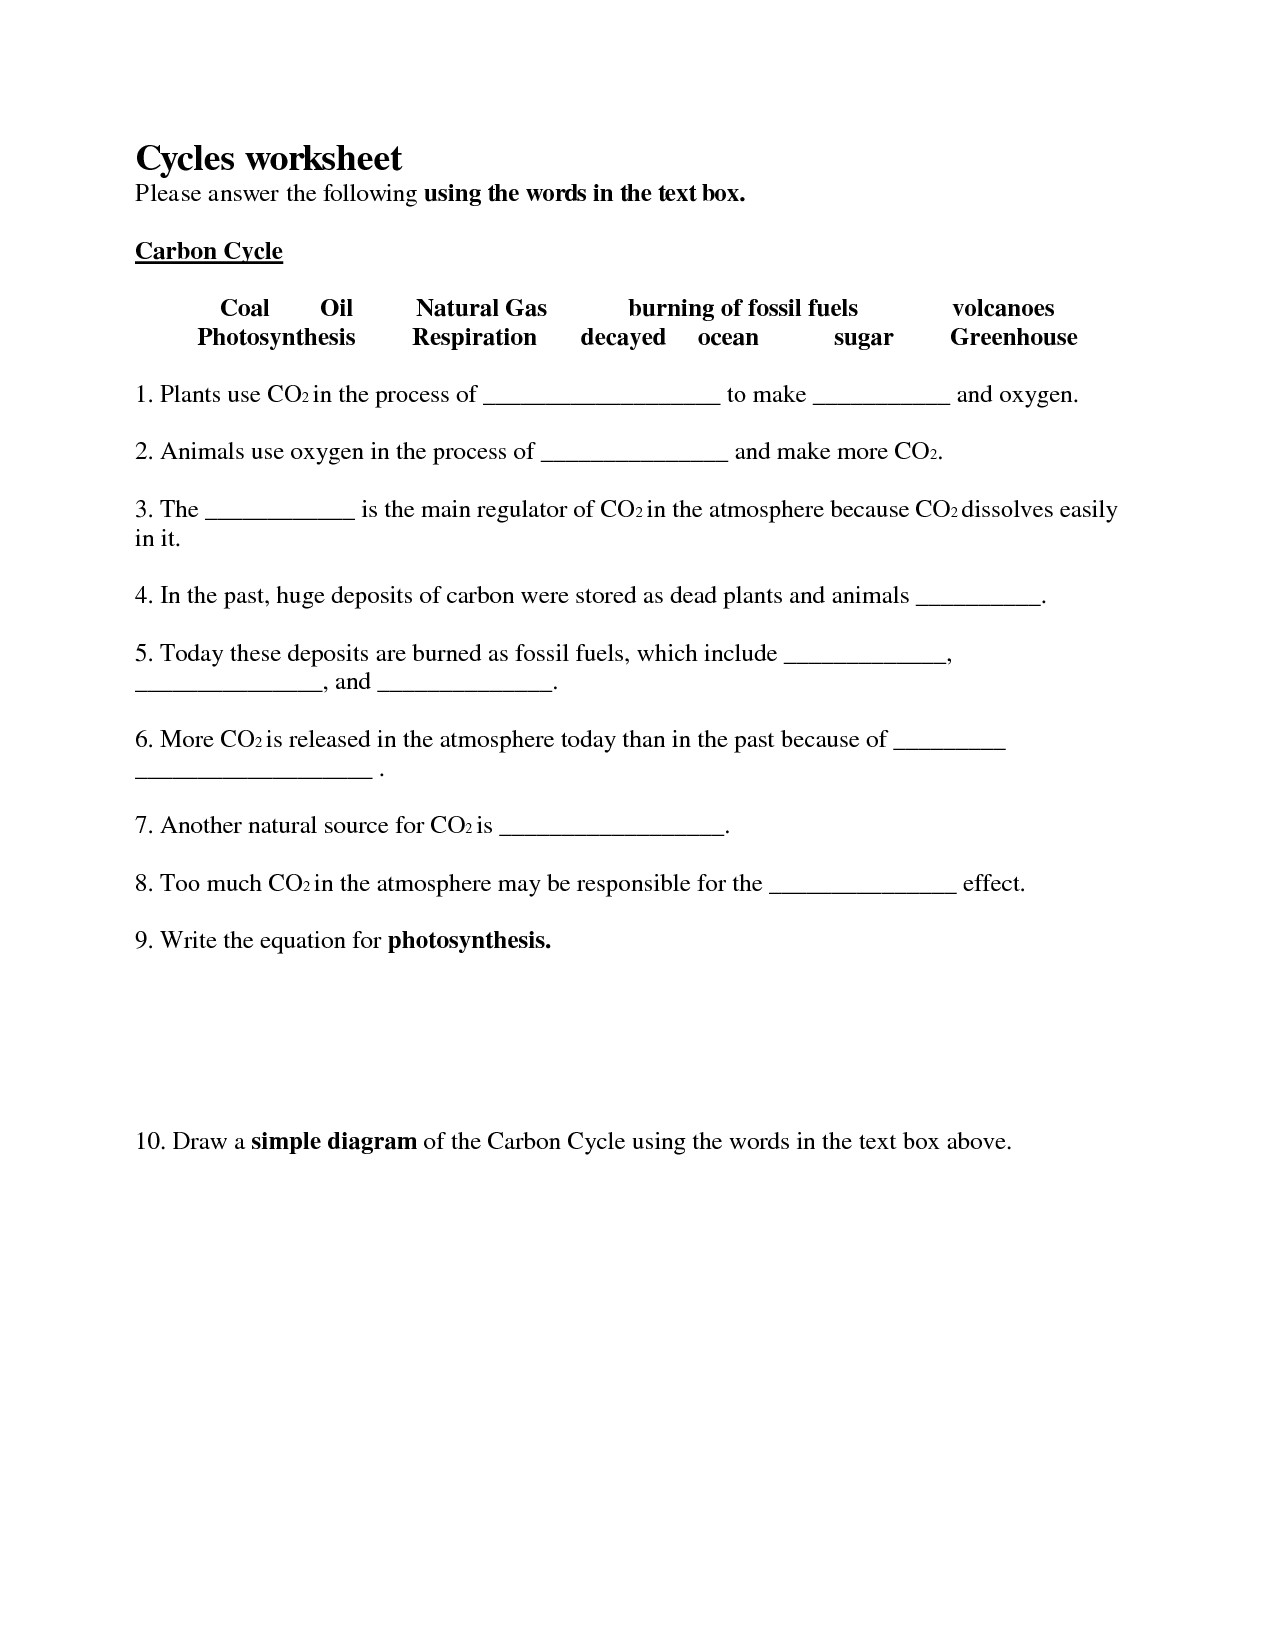 Cycles Worksheet Answer Key Nutrient Cycle Worksheet